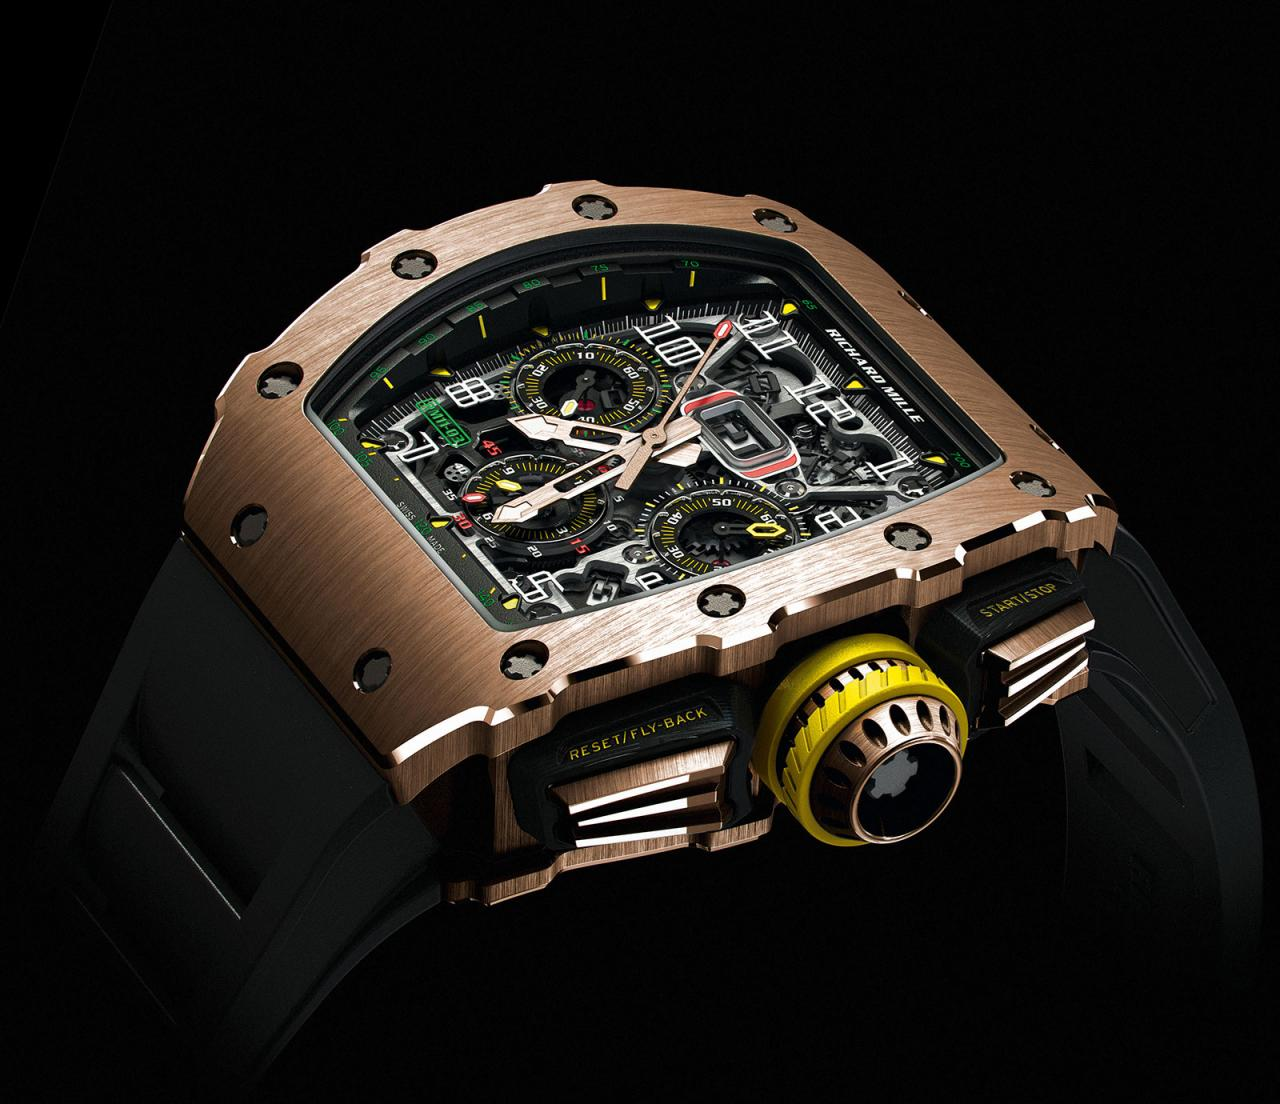 Richard Mille RM 11-03 red gold 4